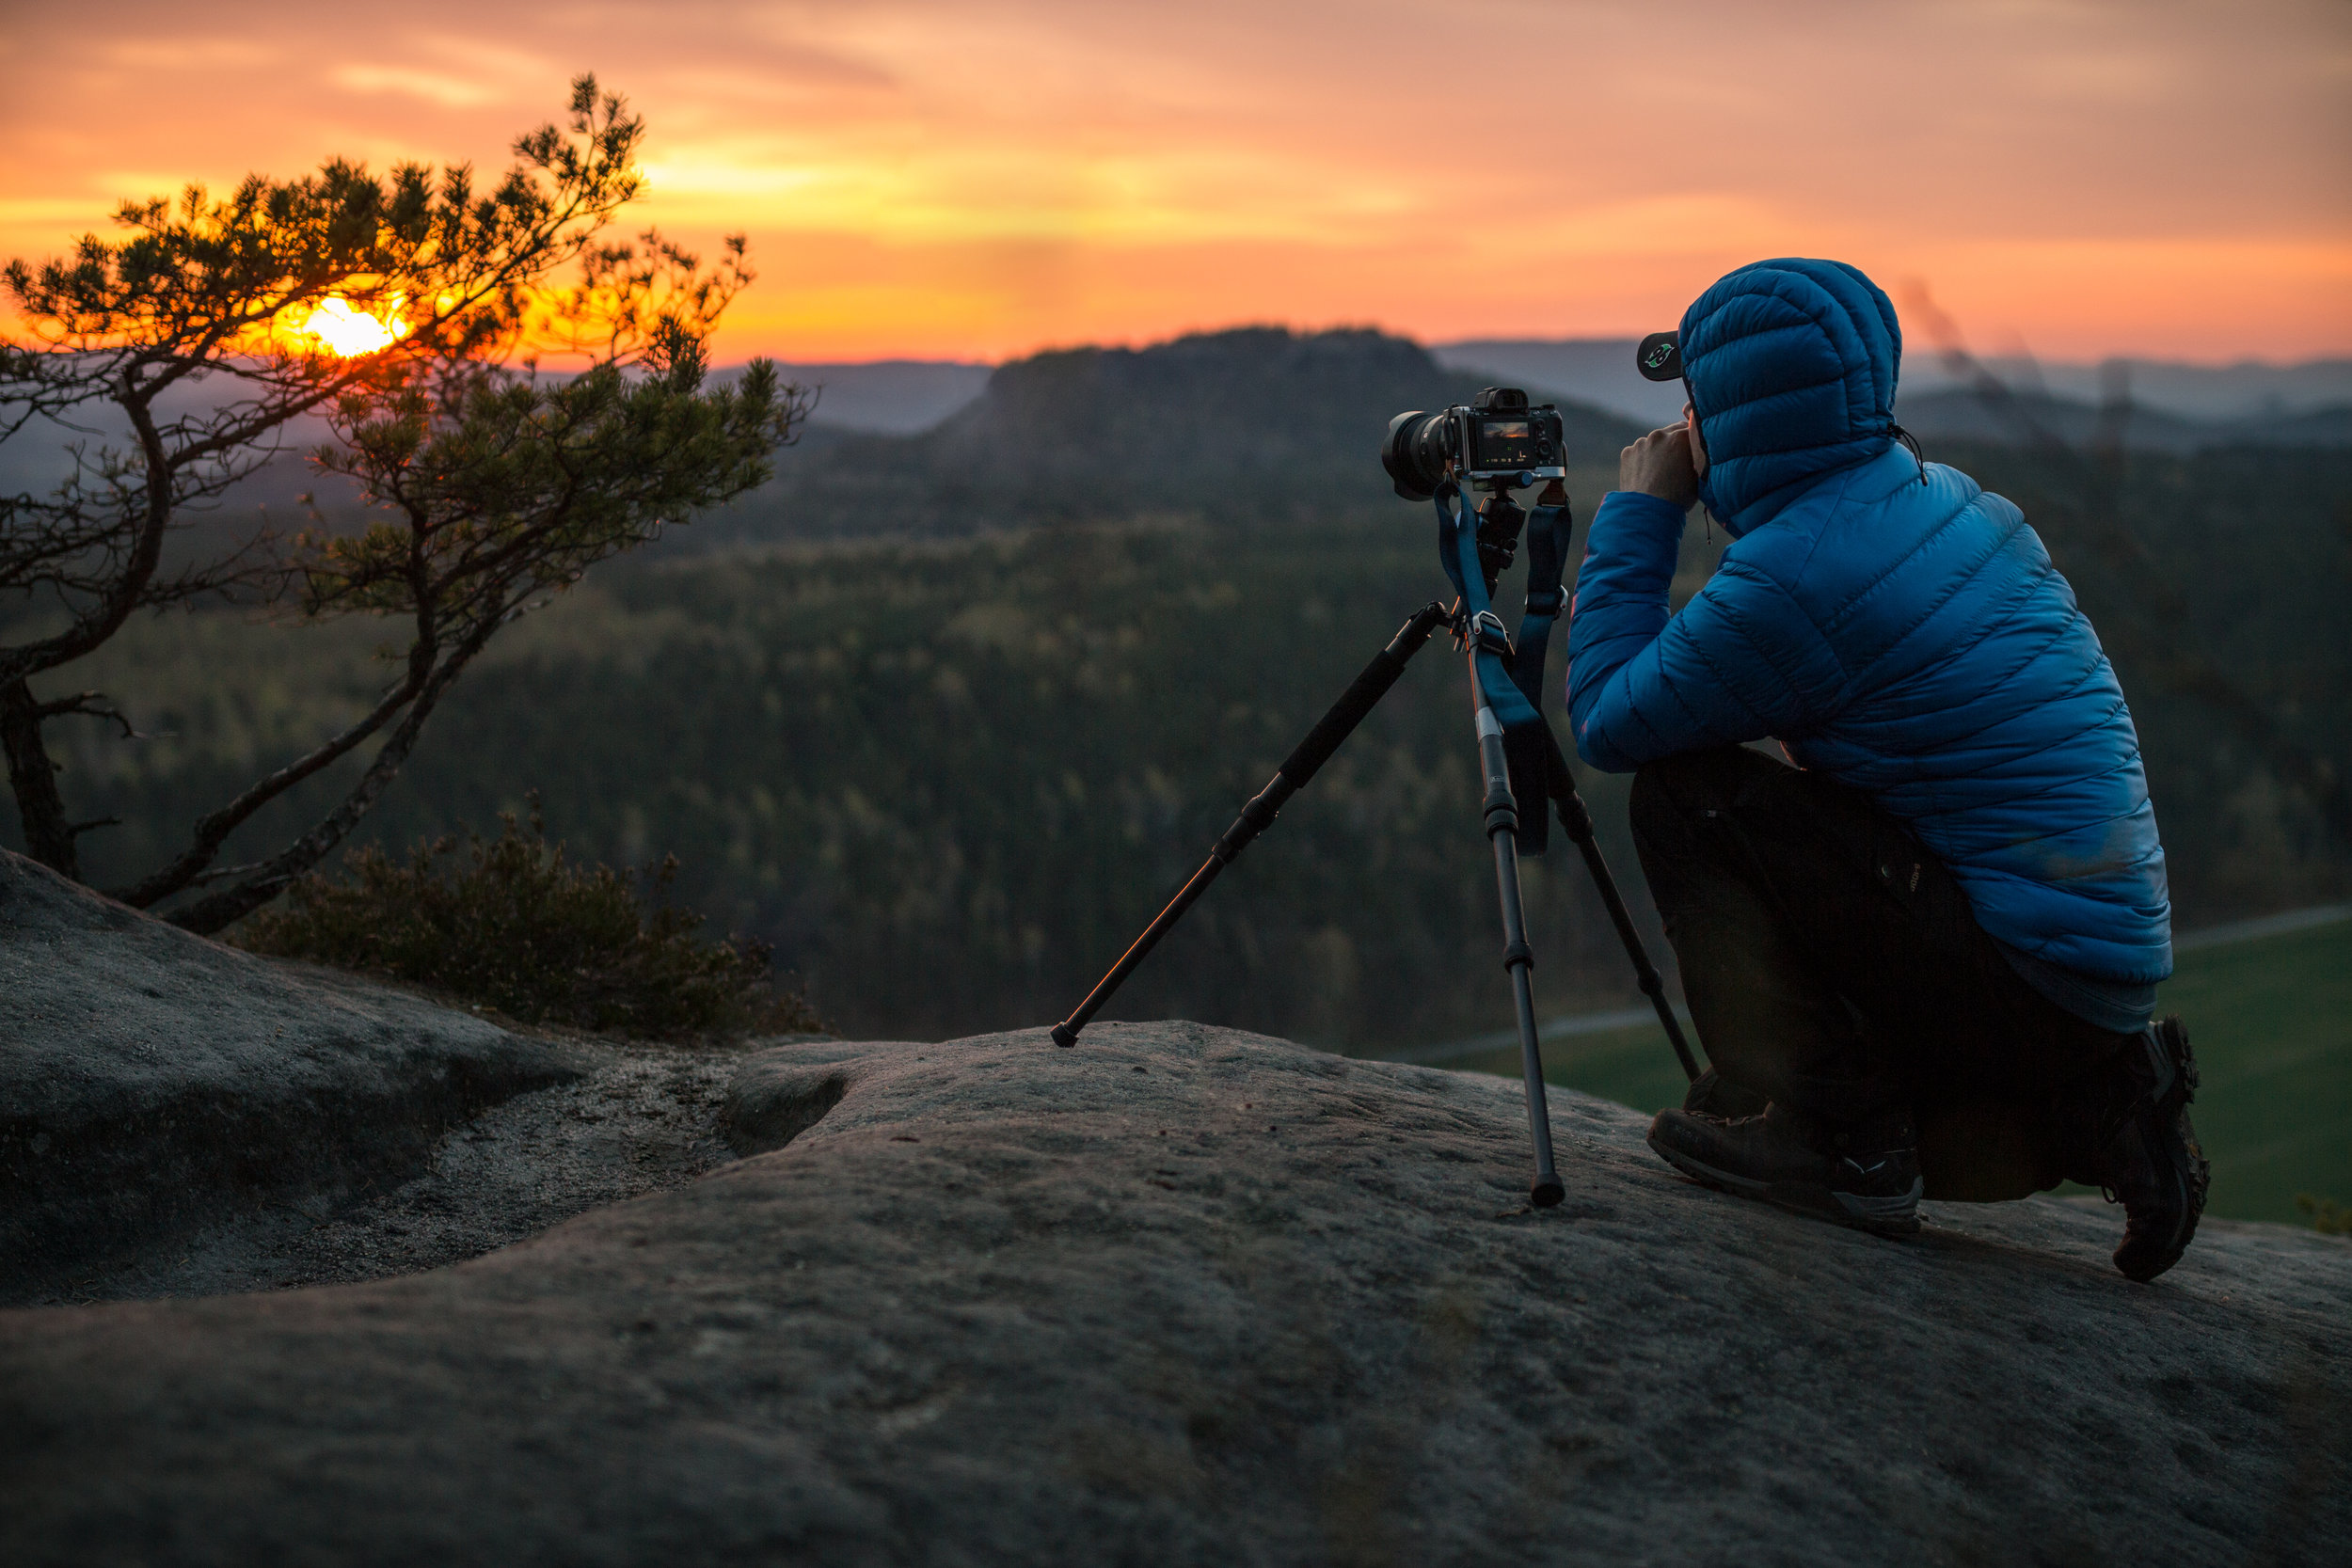 Kai Hornung photographing Saxon Switzerland, Germany (image by: Christian G.)